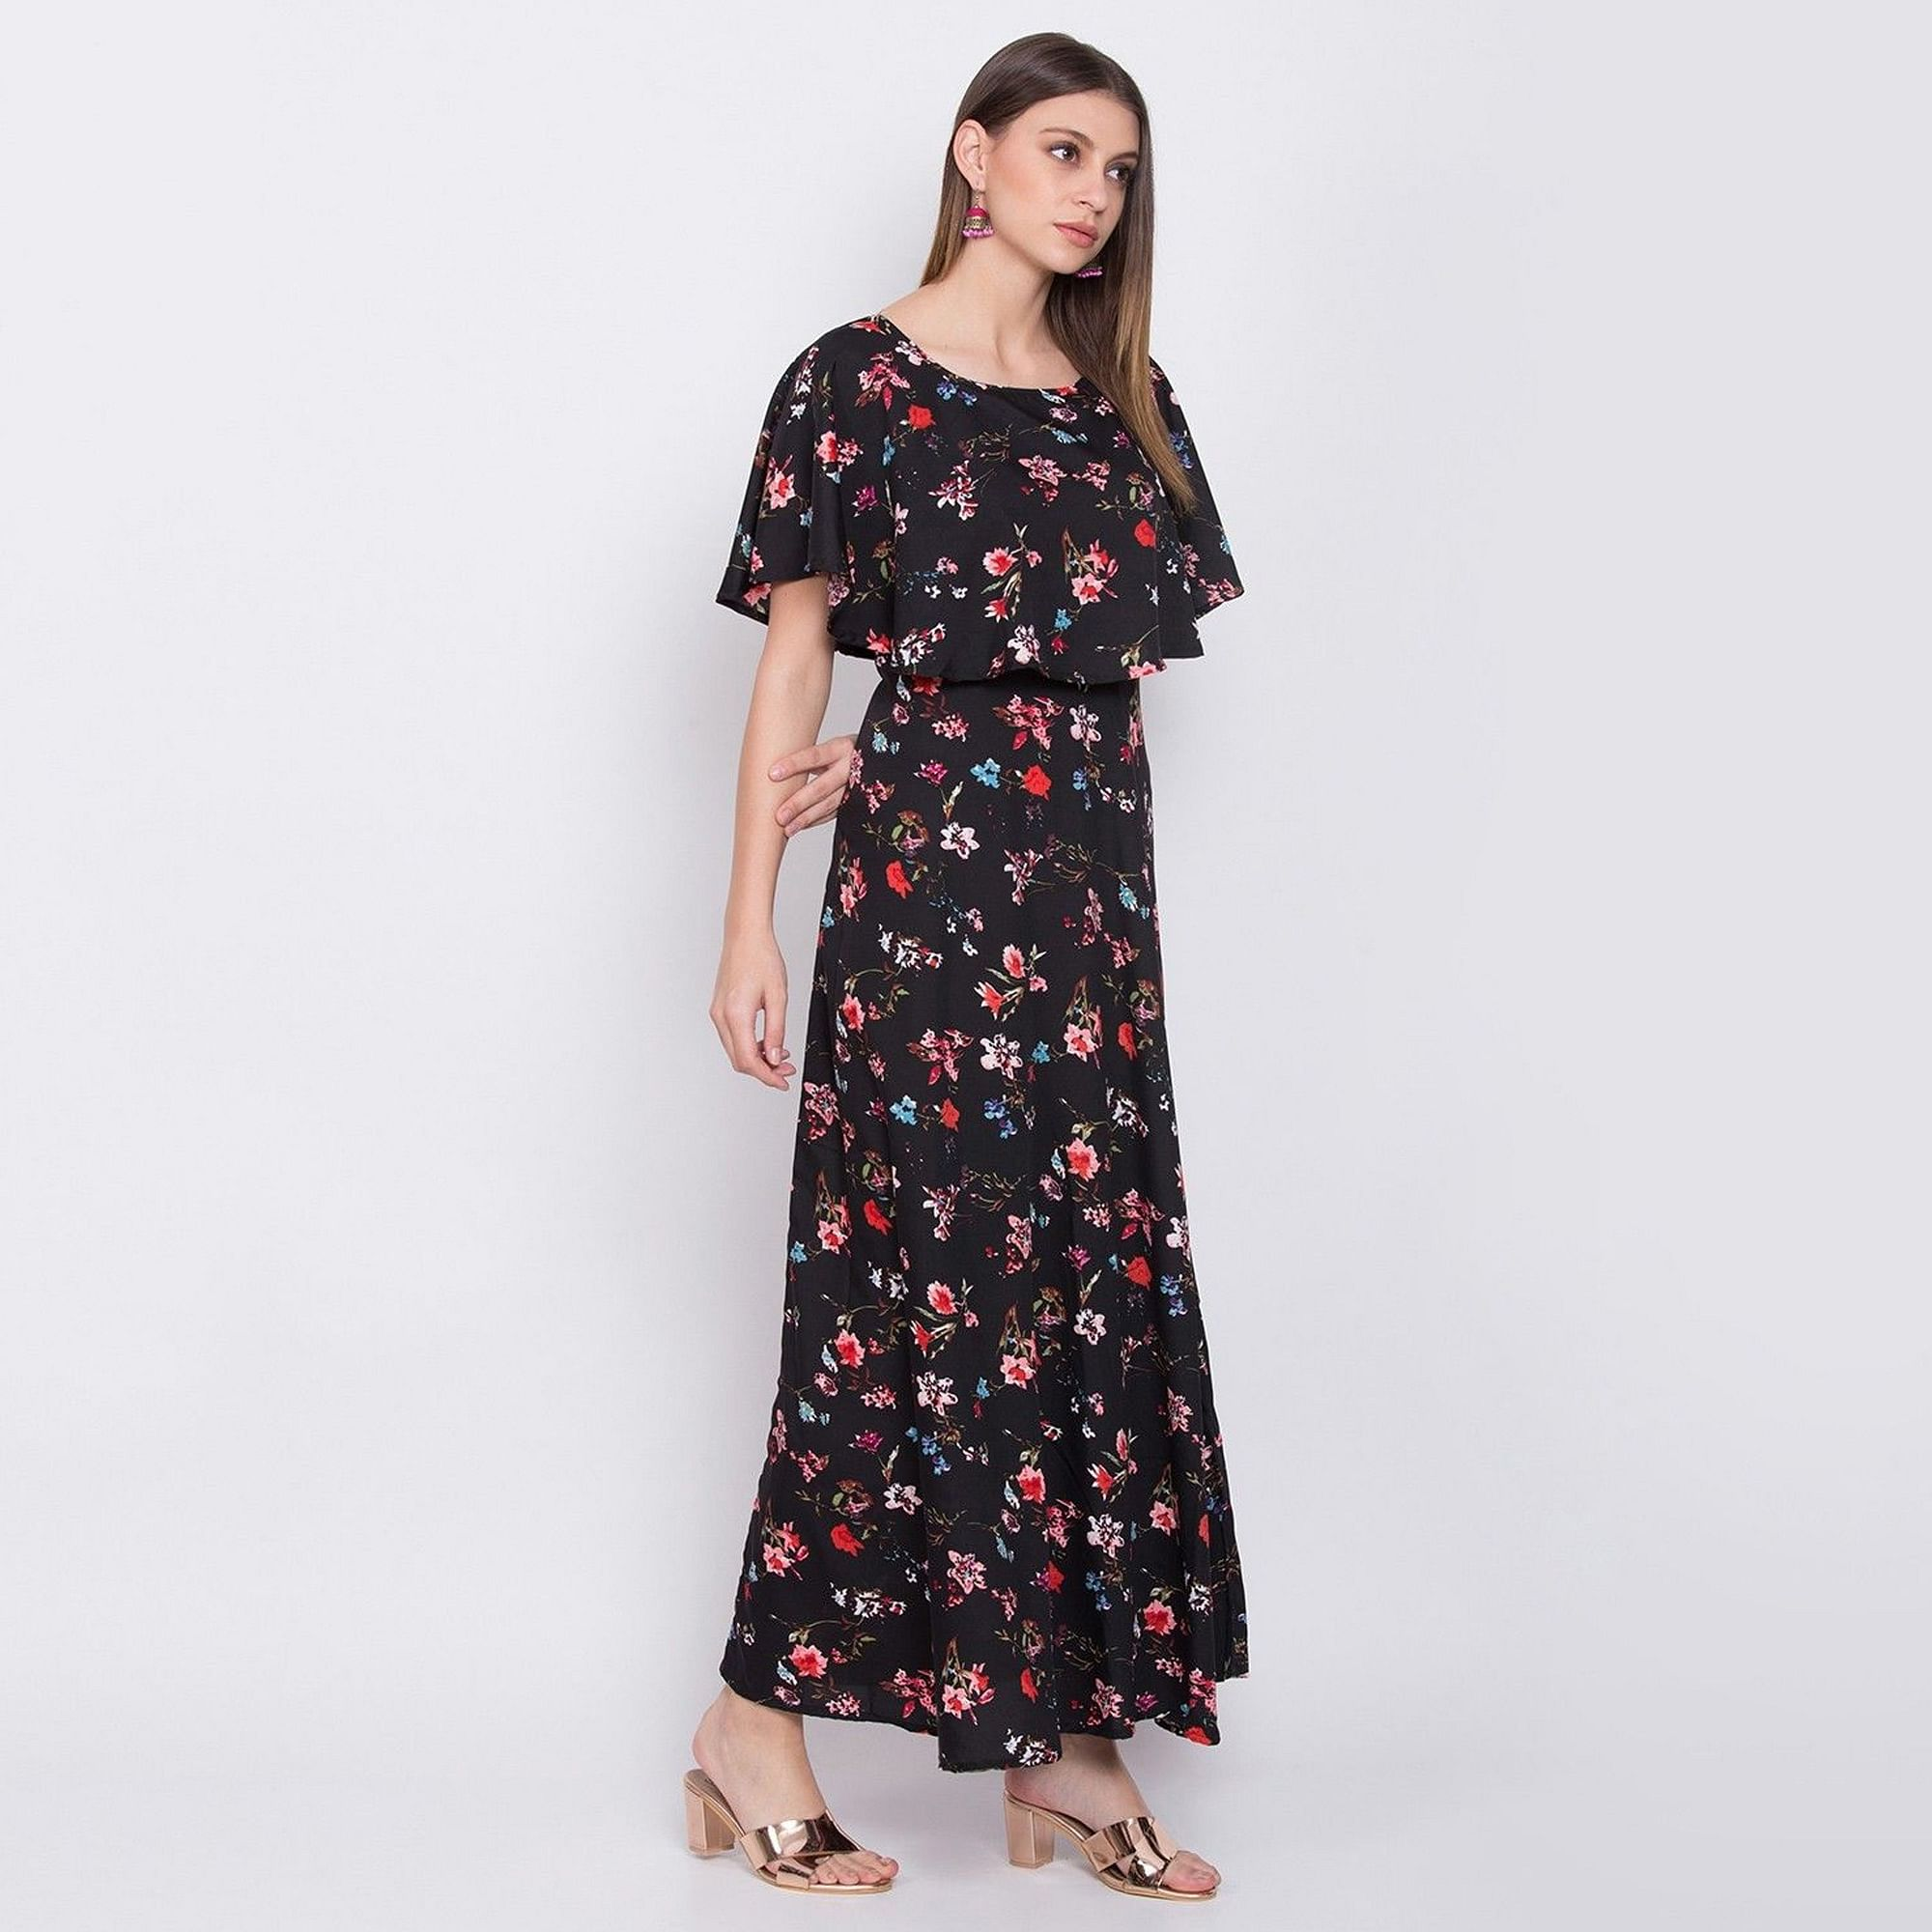 Trendy Black Colored Partywear Cape Sleeve Floral Printed Crepe Maxi Dress